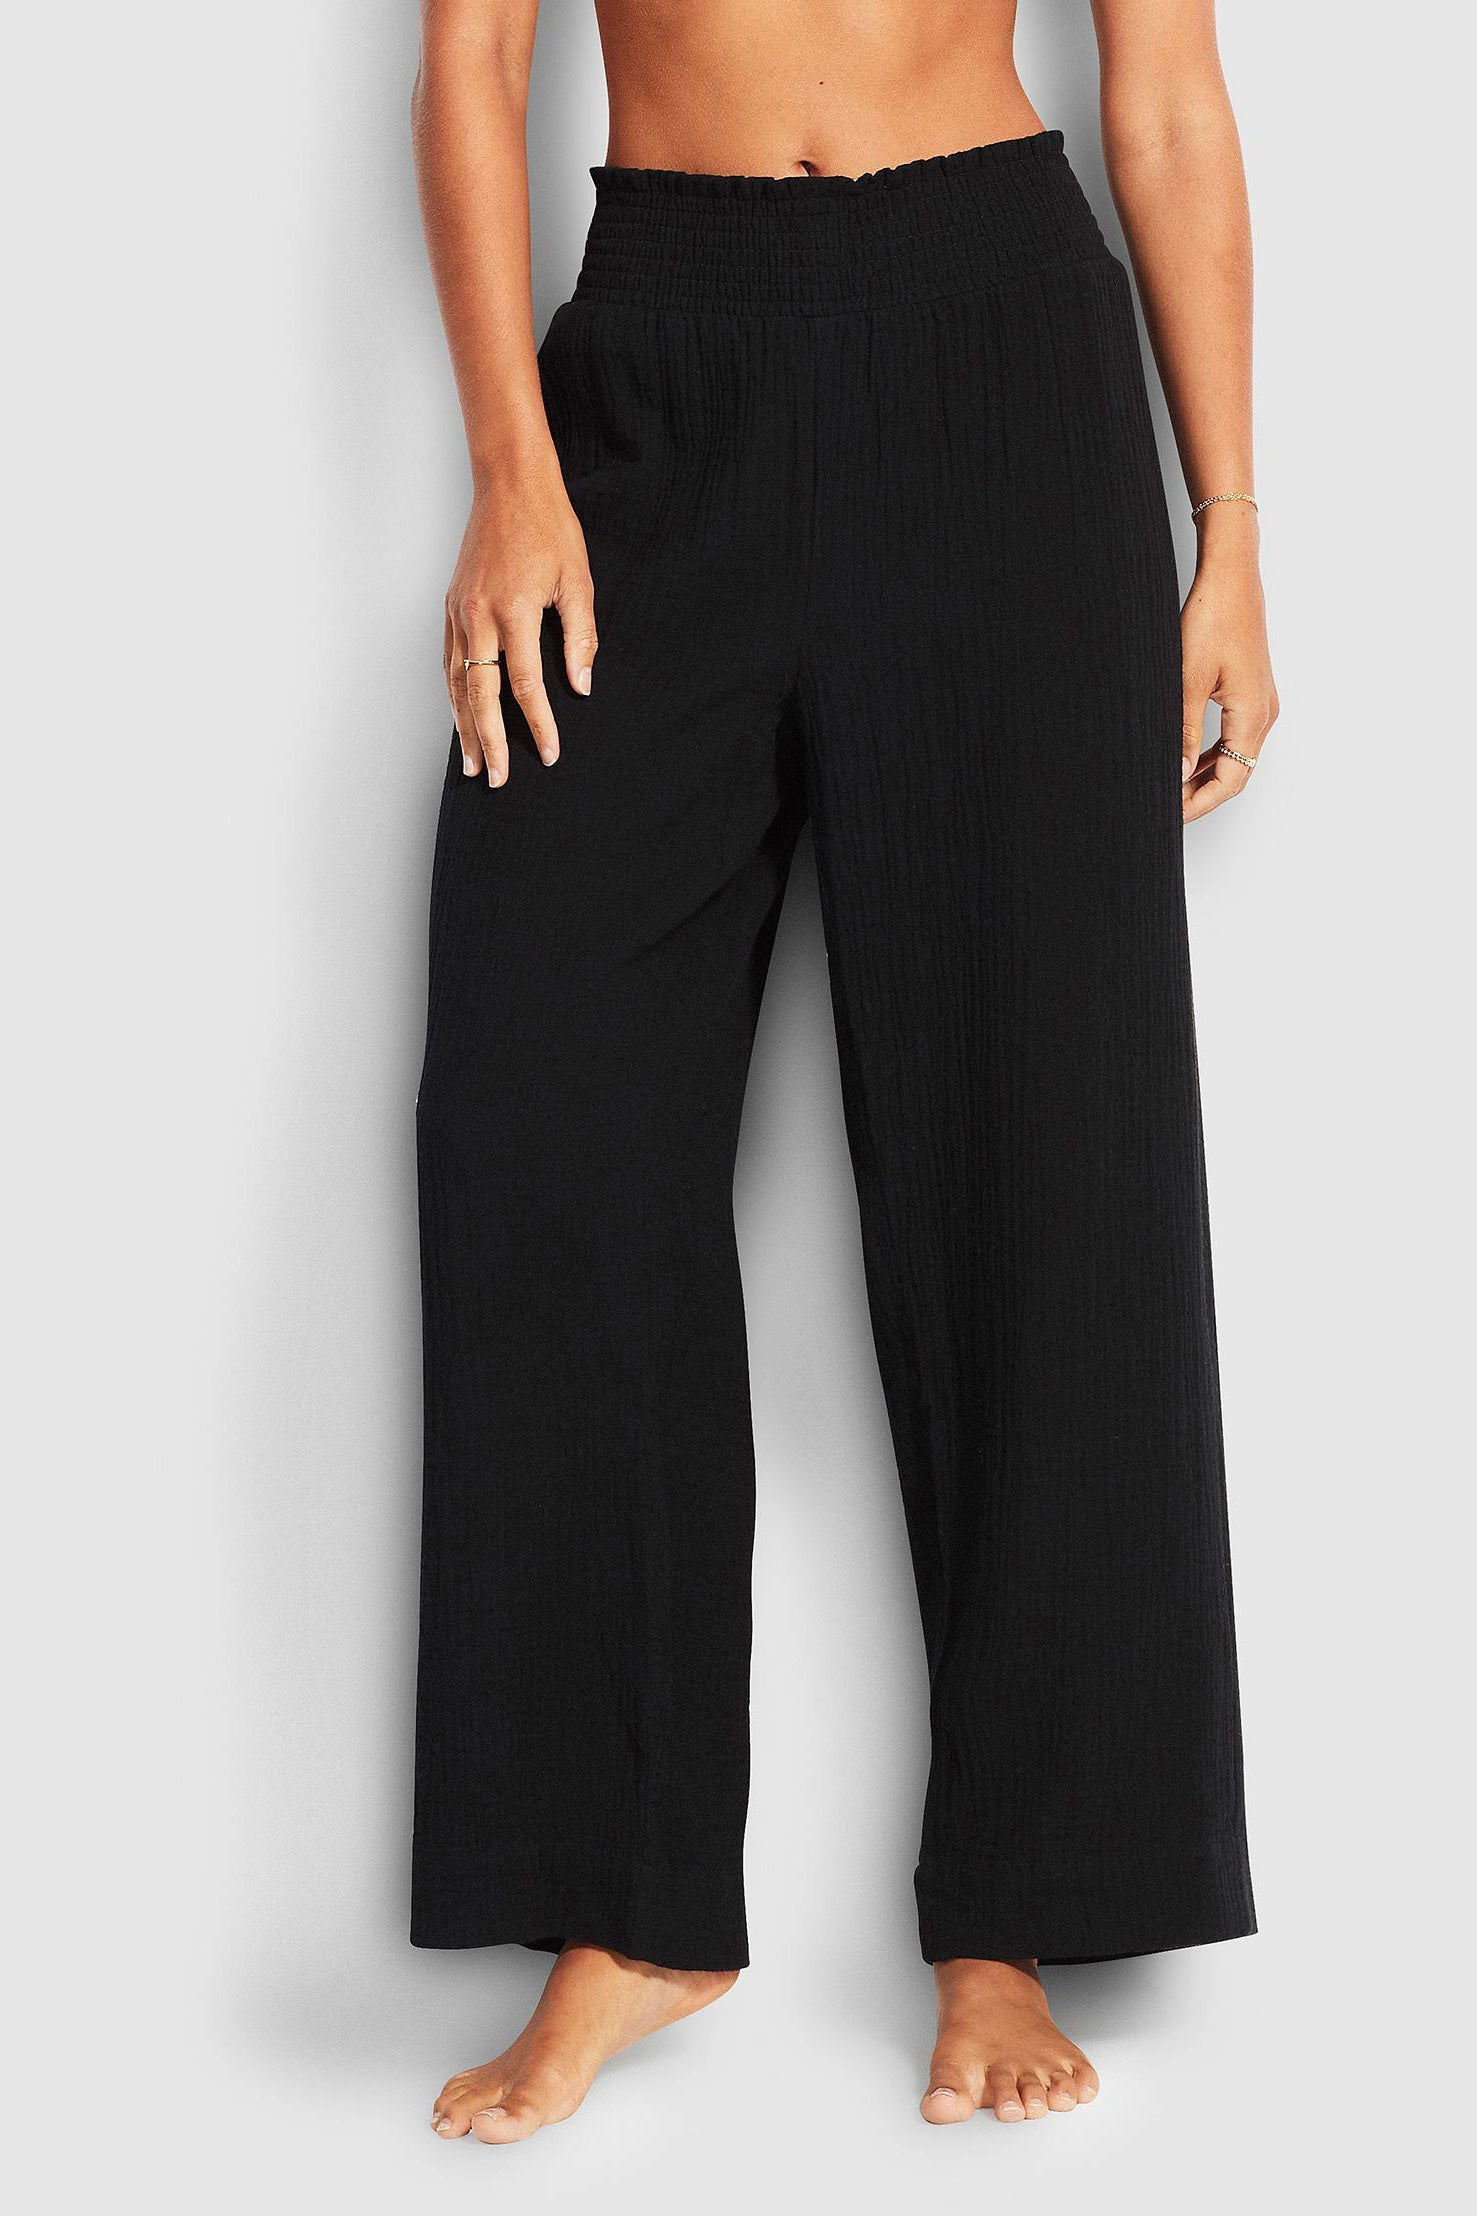 Seafolly Double Cloth Shirring Pant - Black